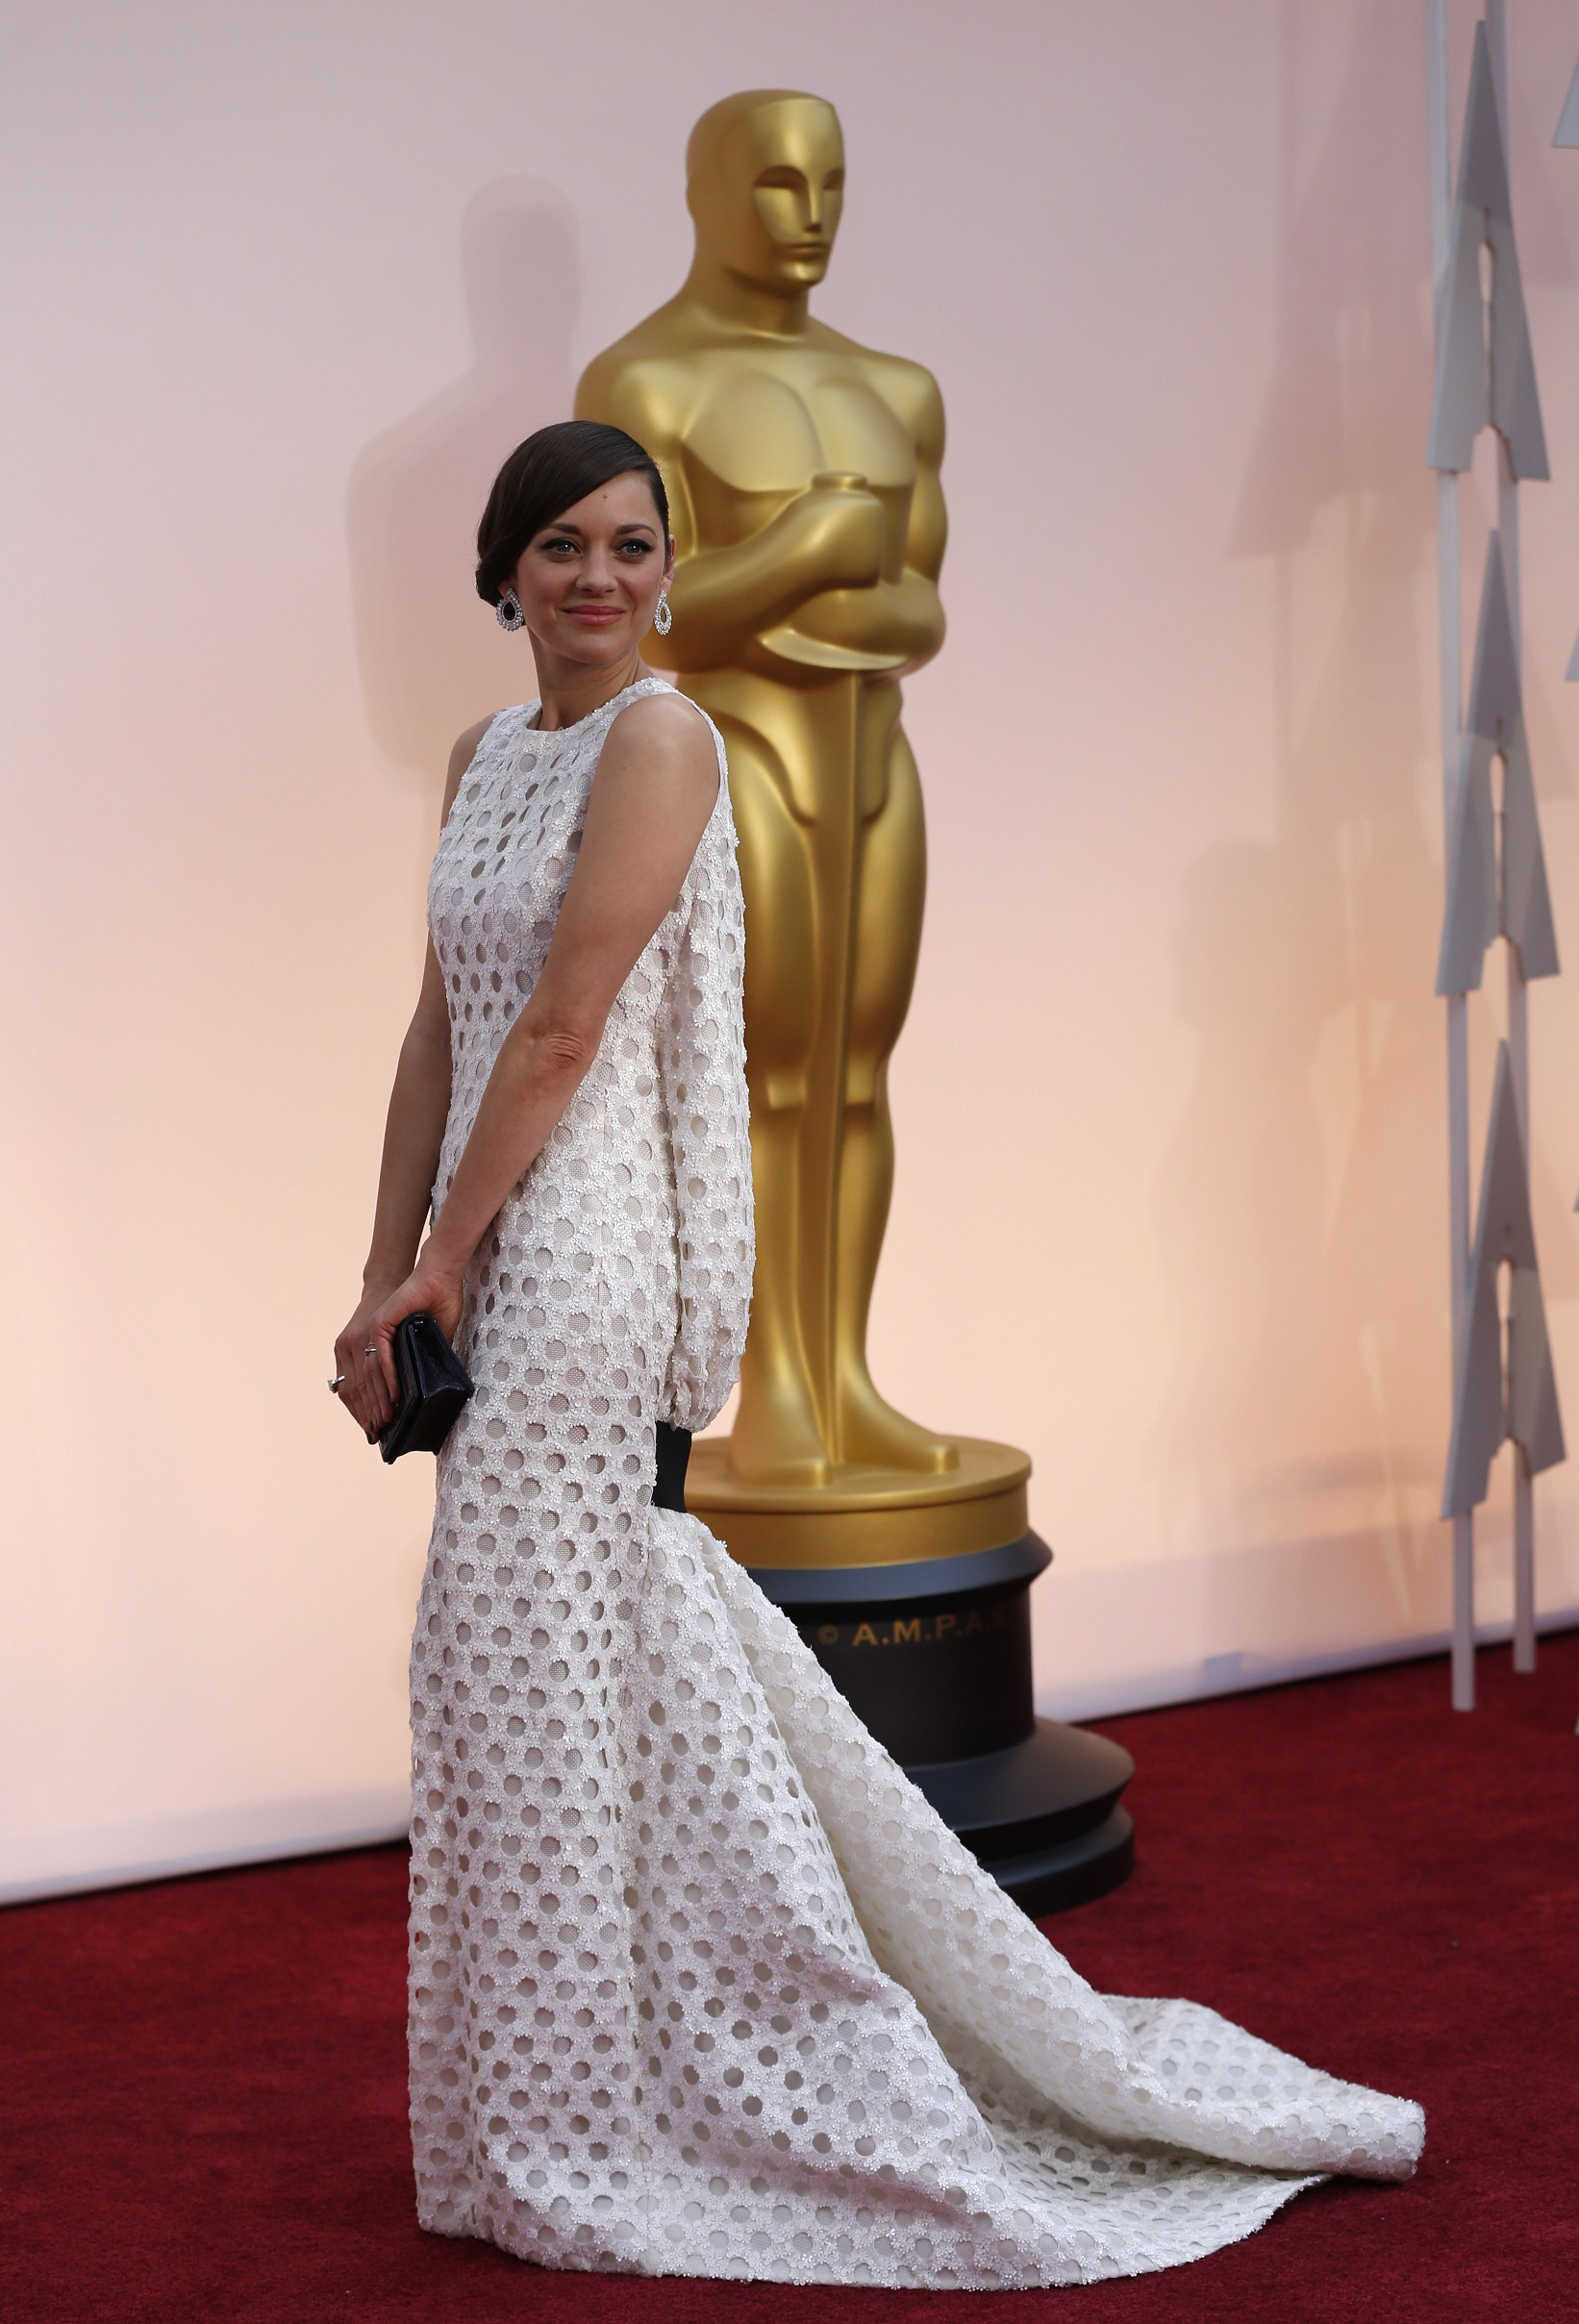 Actress Marion Cotillard wears a Christian Dior gown as she arrives at the 87th Academy Awards in Hollywood